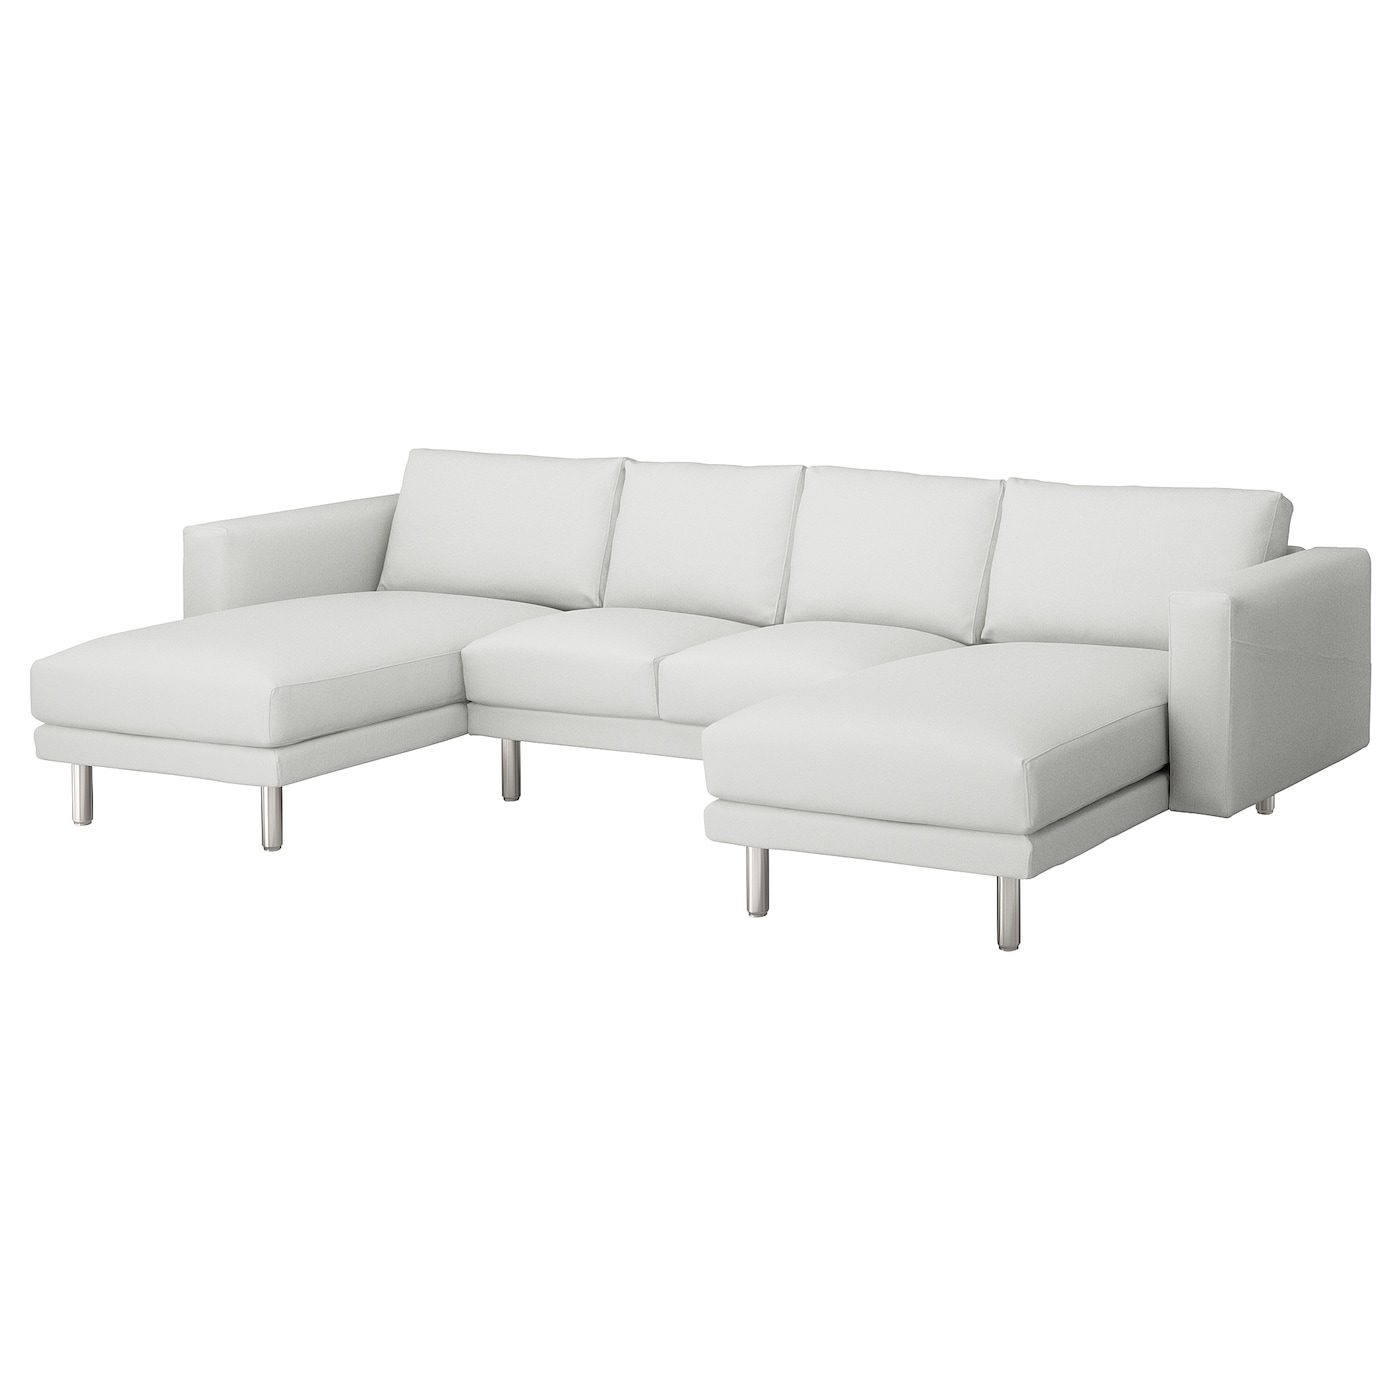 Fabric sofas ikea for 2 5 seater sofa with chaise